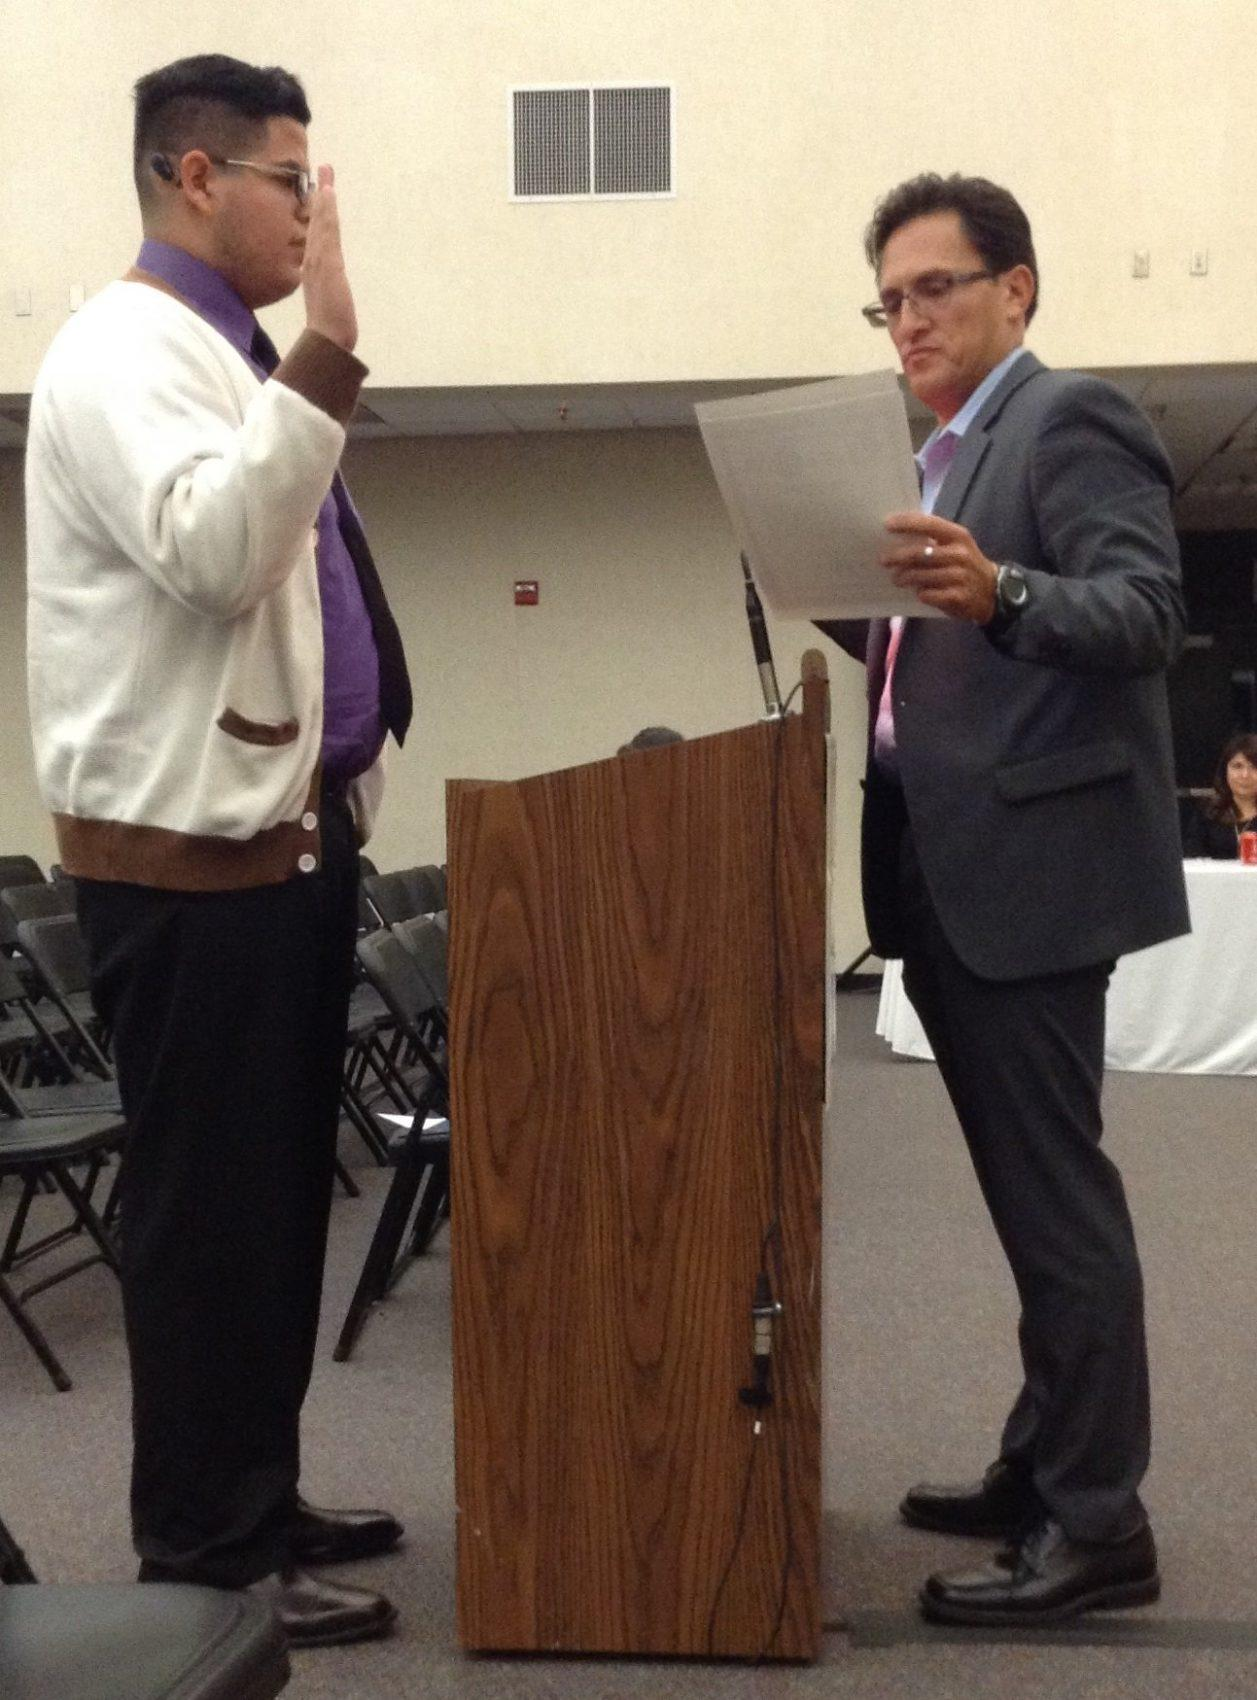 Lugo student gets awarded by President of Board.